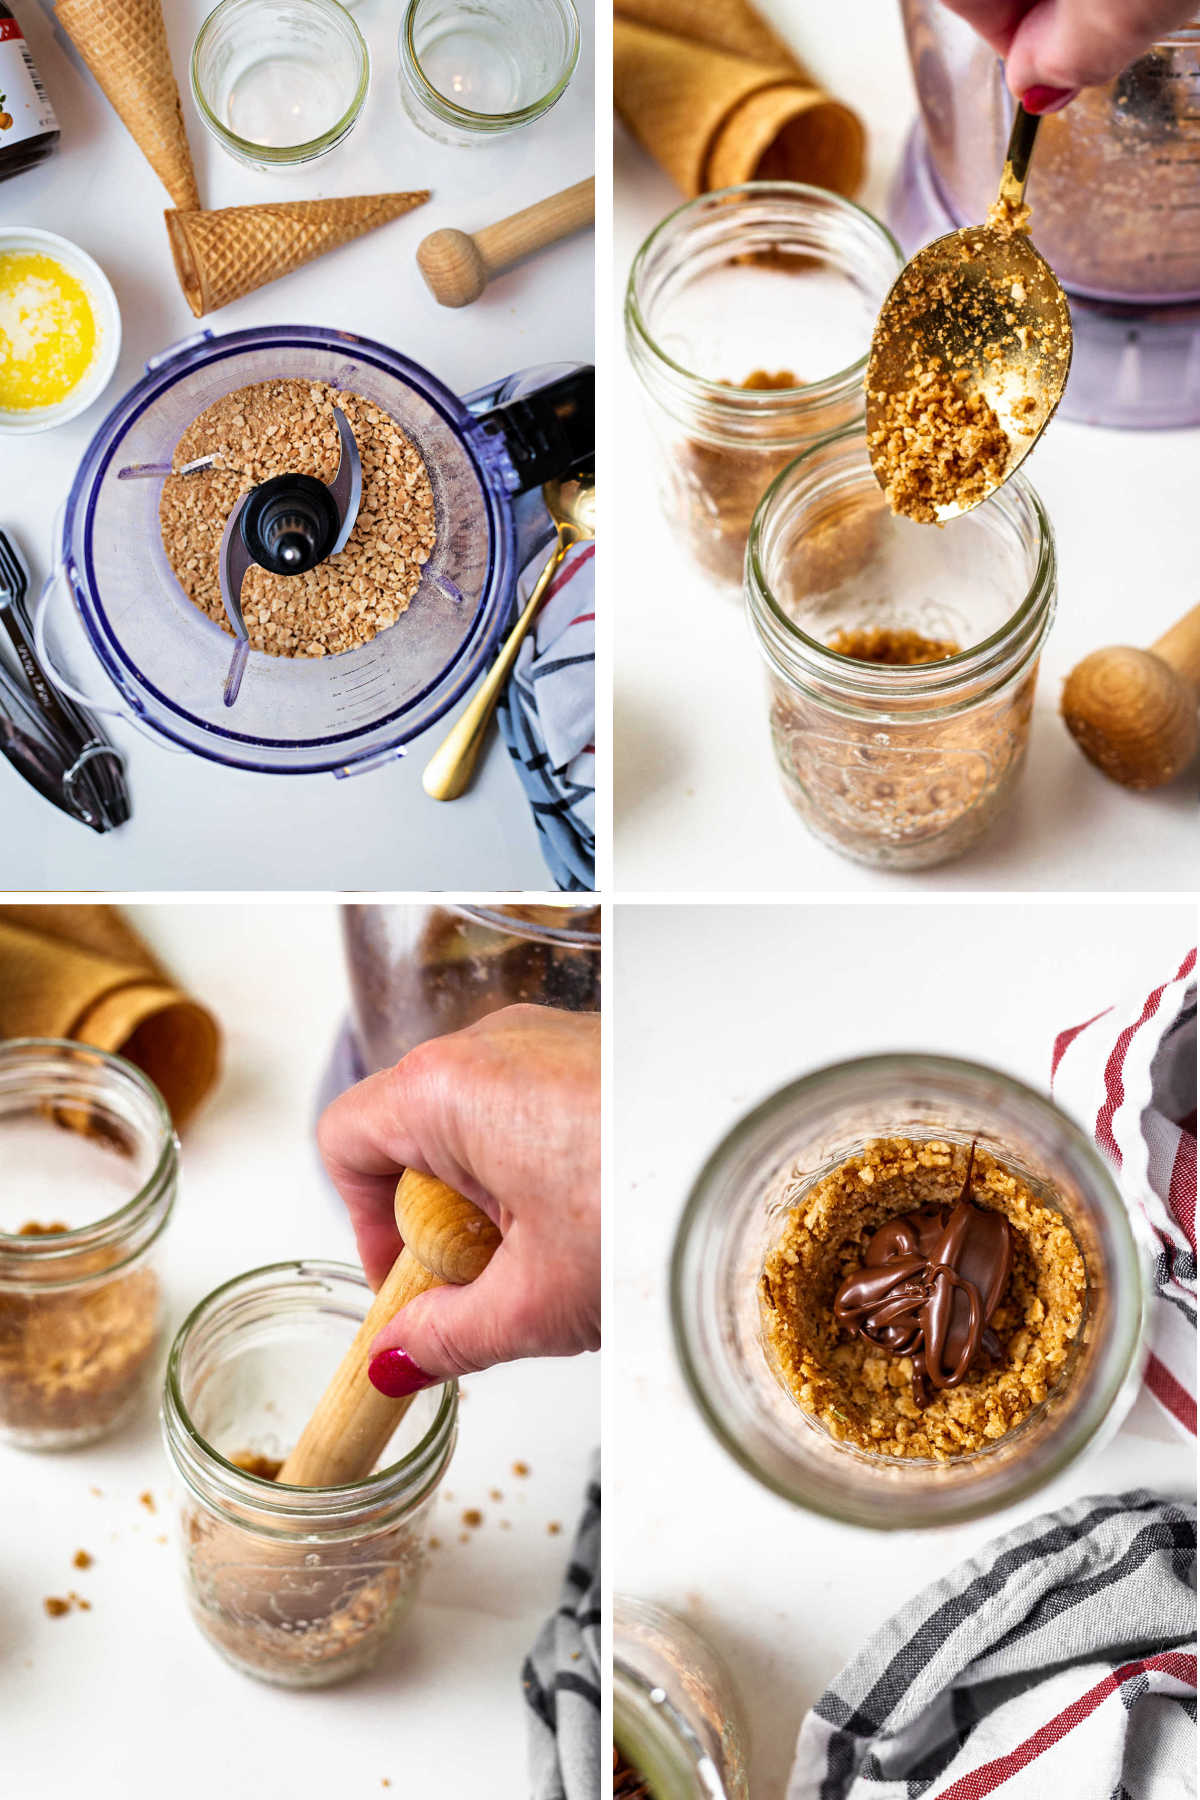 process steps for making the crust for ice cream pie in a jar: 1) process sugar cones into crumbs 2)spoon into jars 3) press into the bottom of the jar 4)add a spoonful of hazelnut spread.